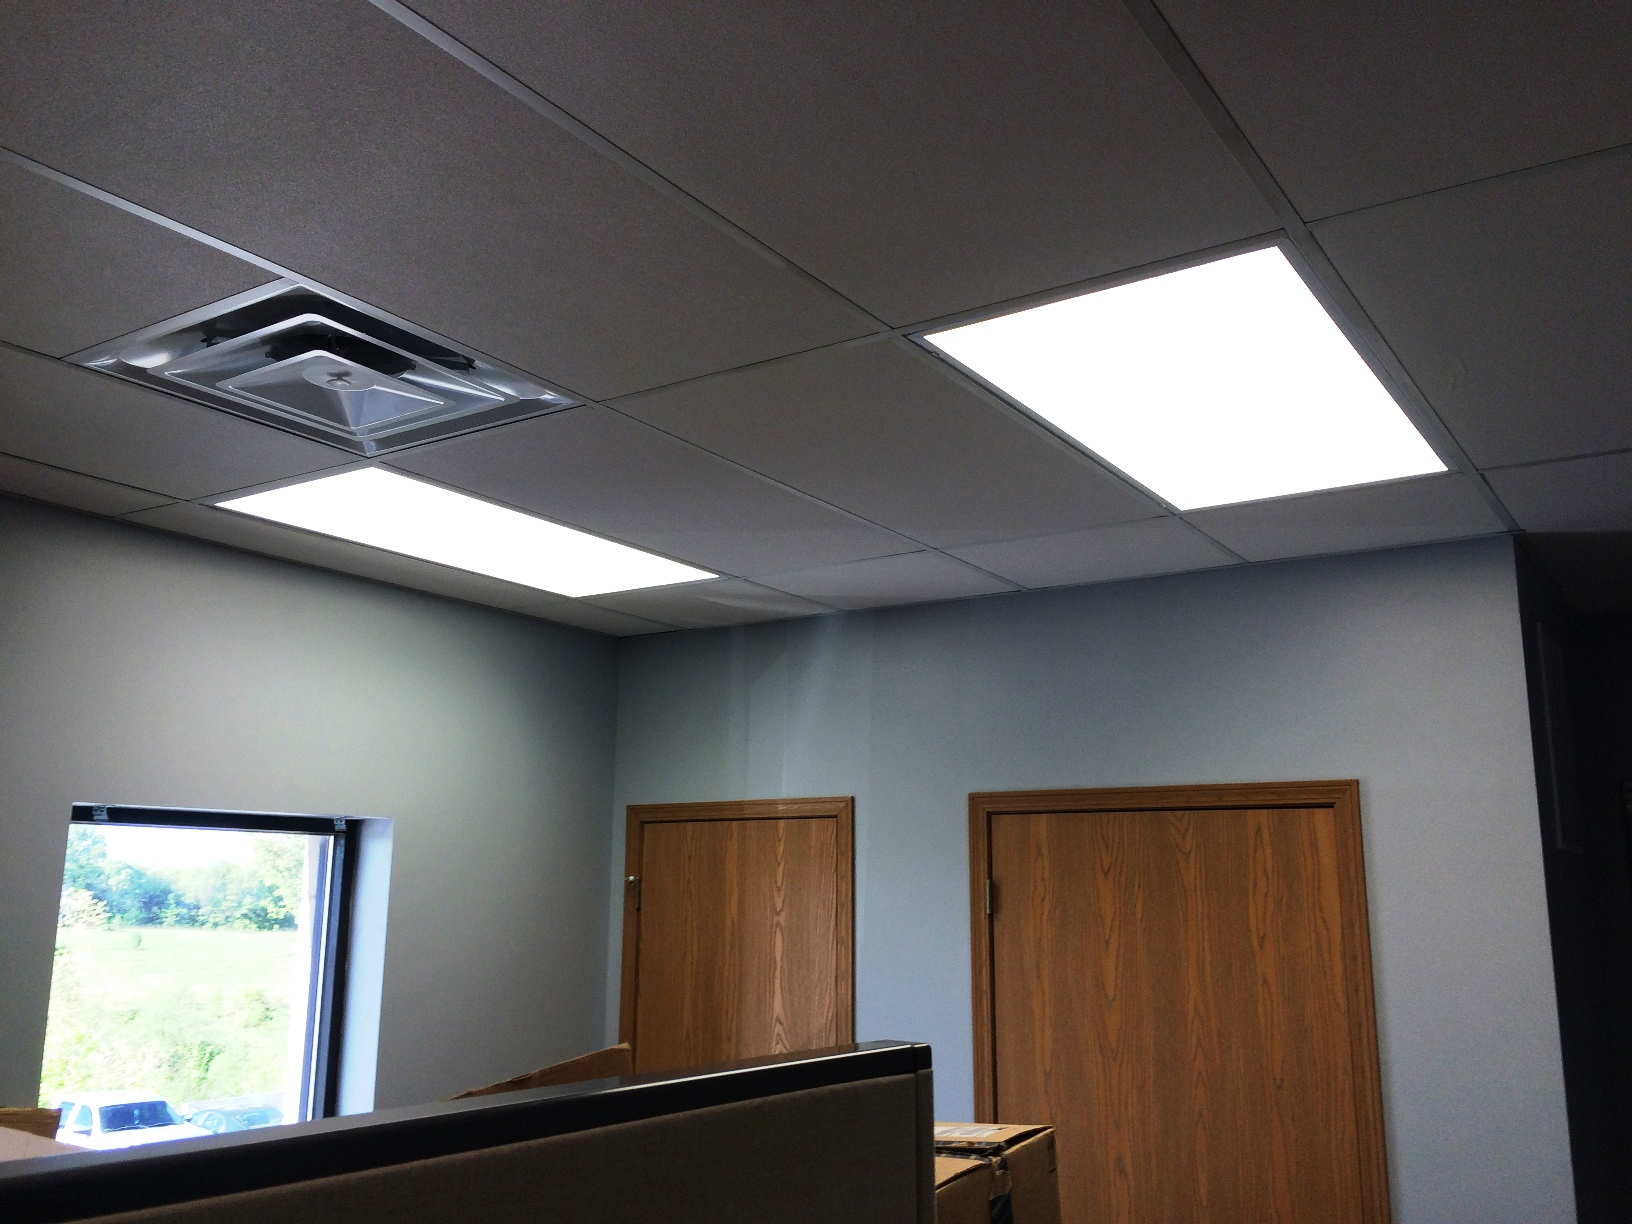 Insulating fiberglass ceiling tiles with high nrc value all in one ceiling tiles photo gallery dailygadgetfo Choice Image